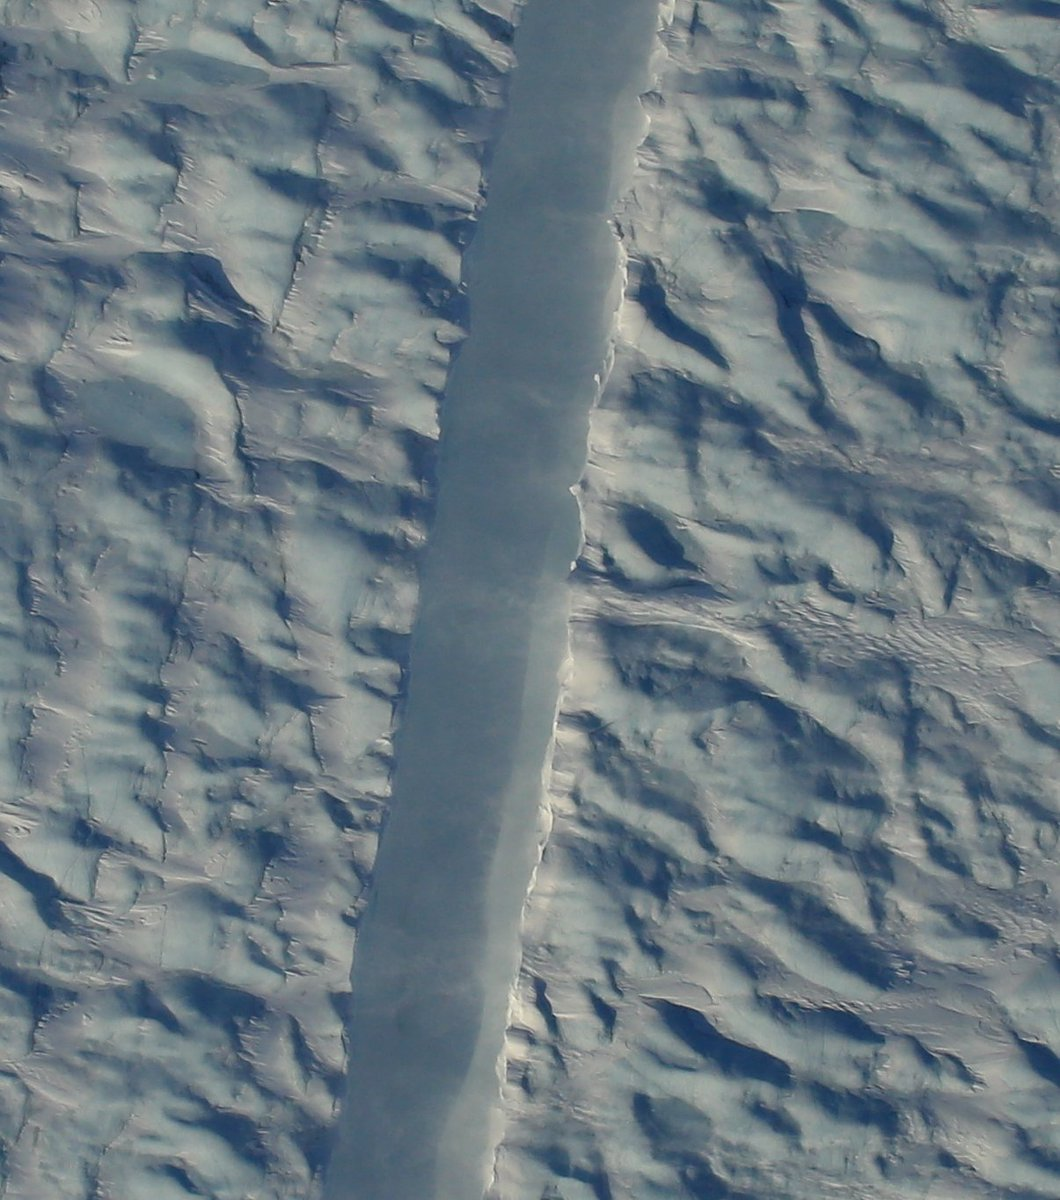 From today's #IceBridge flight: A closeup shot of the new rift on Petermann Glacier's ice shelf, NW Greenland. https://t.co/mb0hYO8Zlm